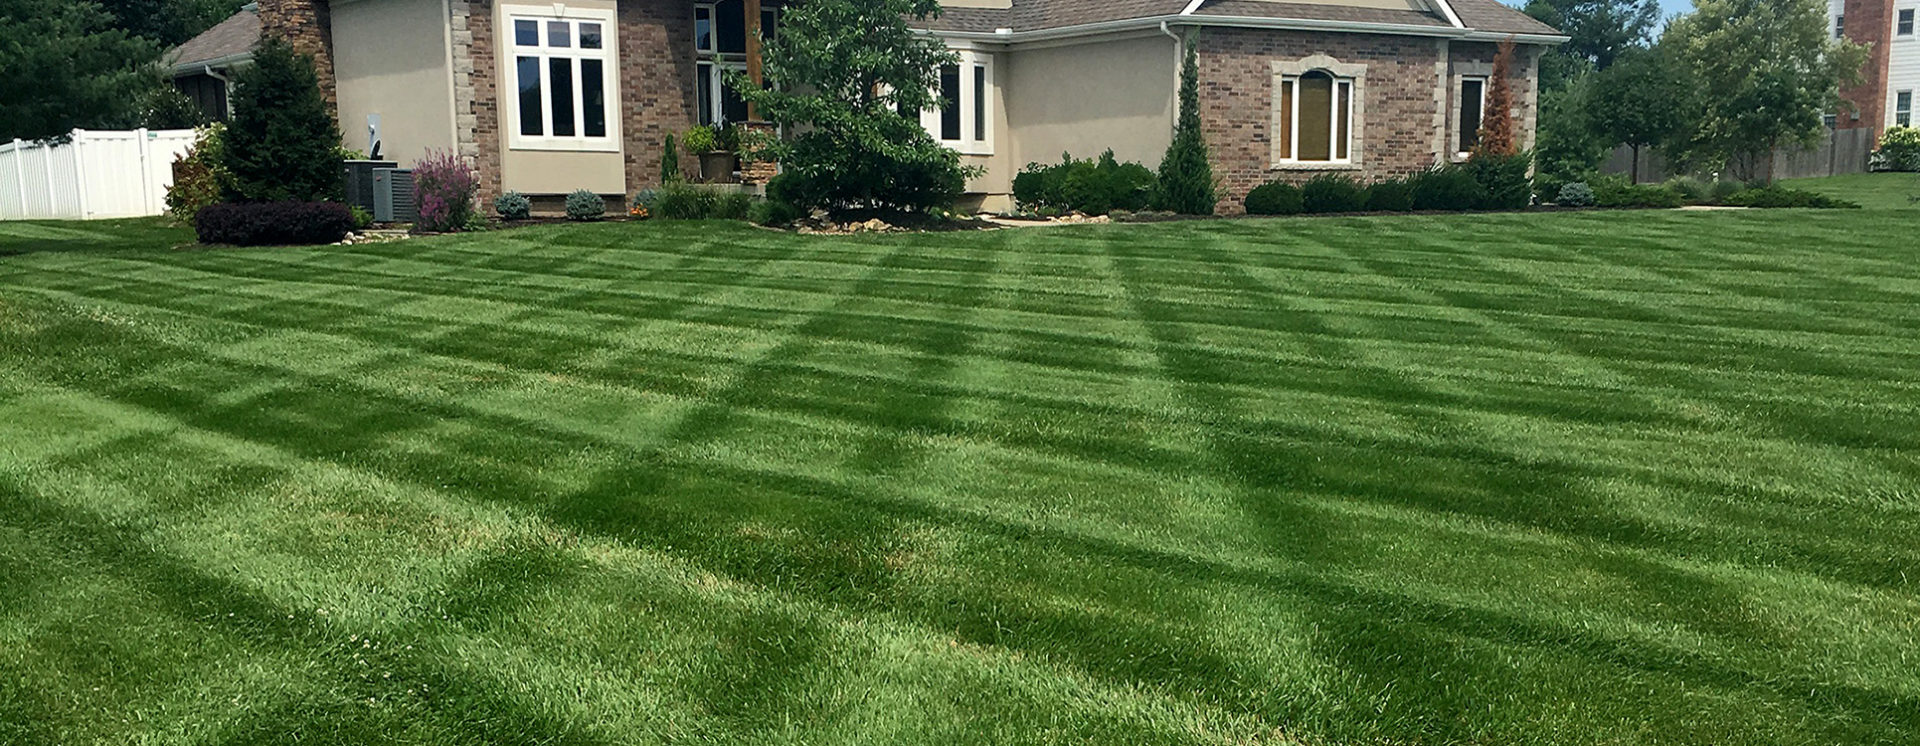 Your Lawn Matters!